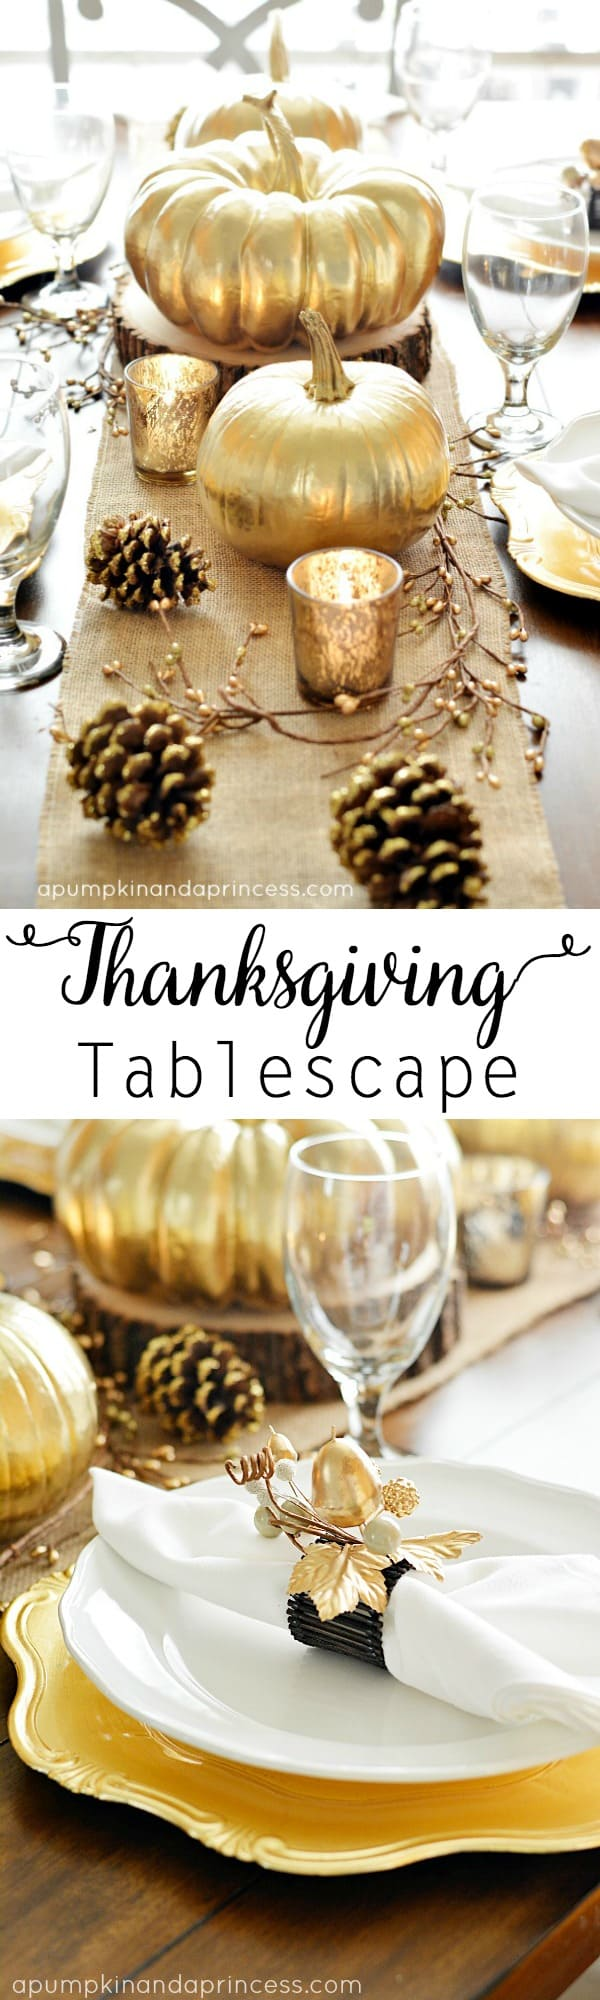 Paysage de table de Thanksgiving en or peint